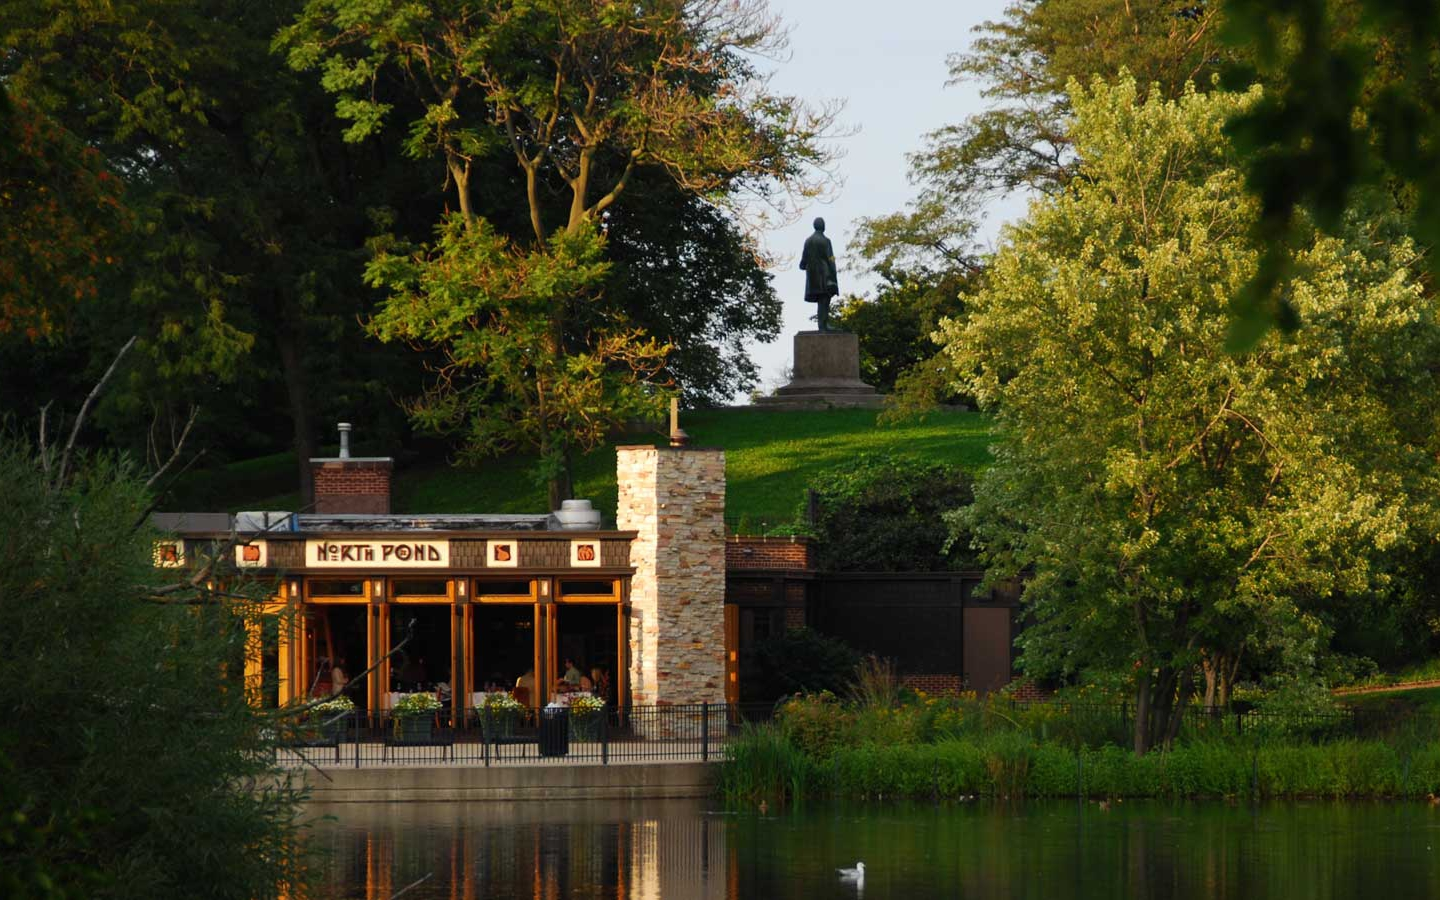 North Pond Restaurant